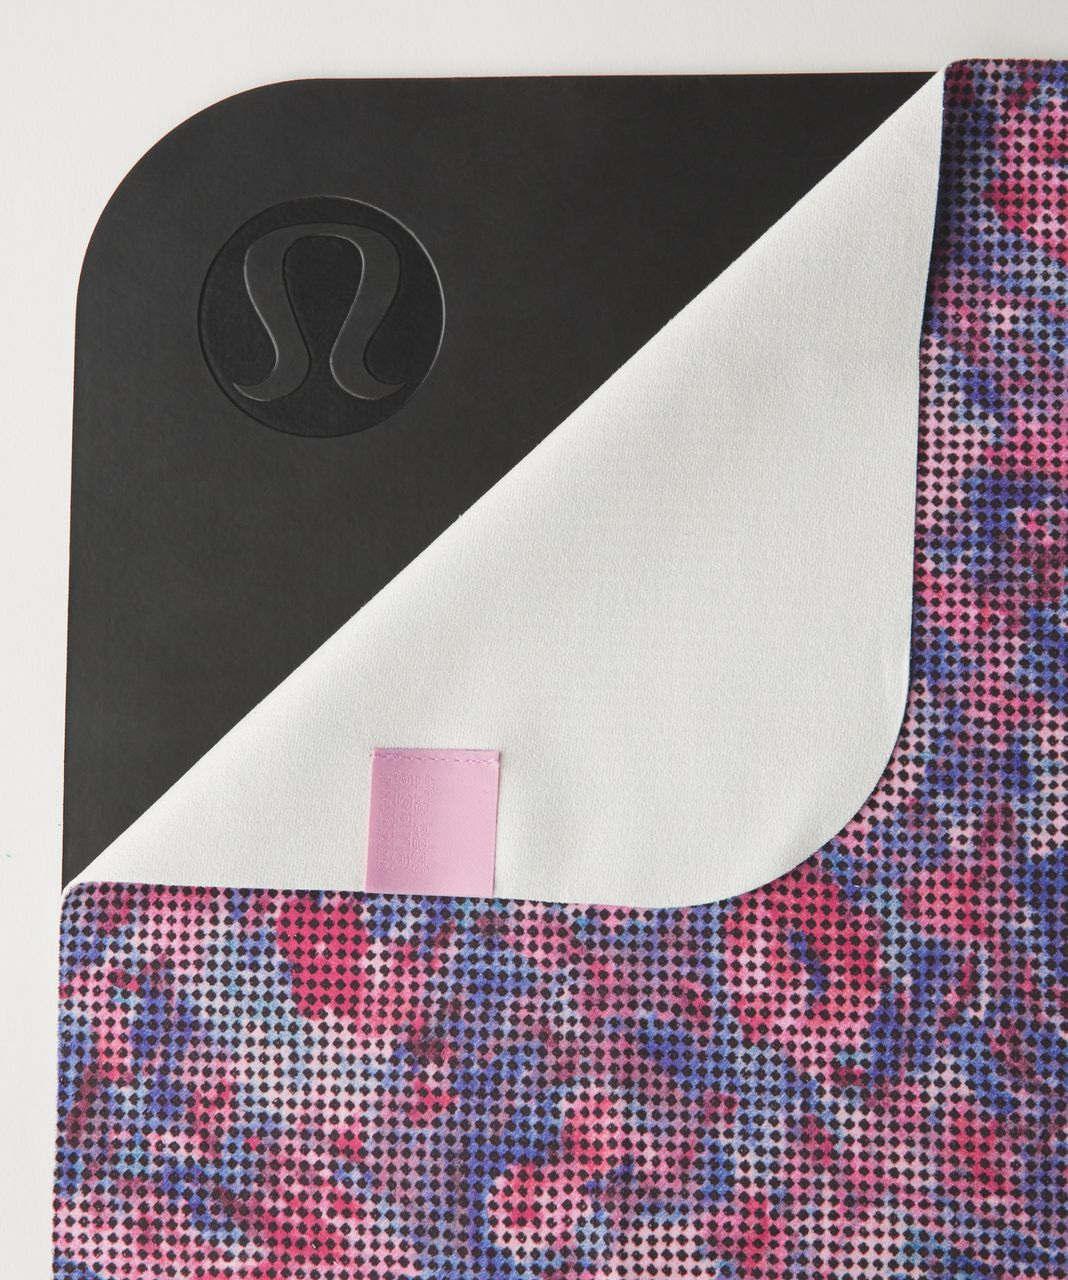 Lululemon The (Small) Towel - Checker Blooms Multi